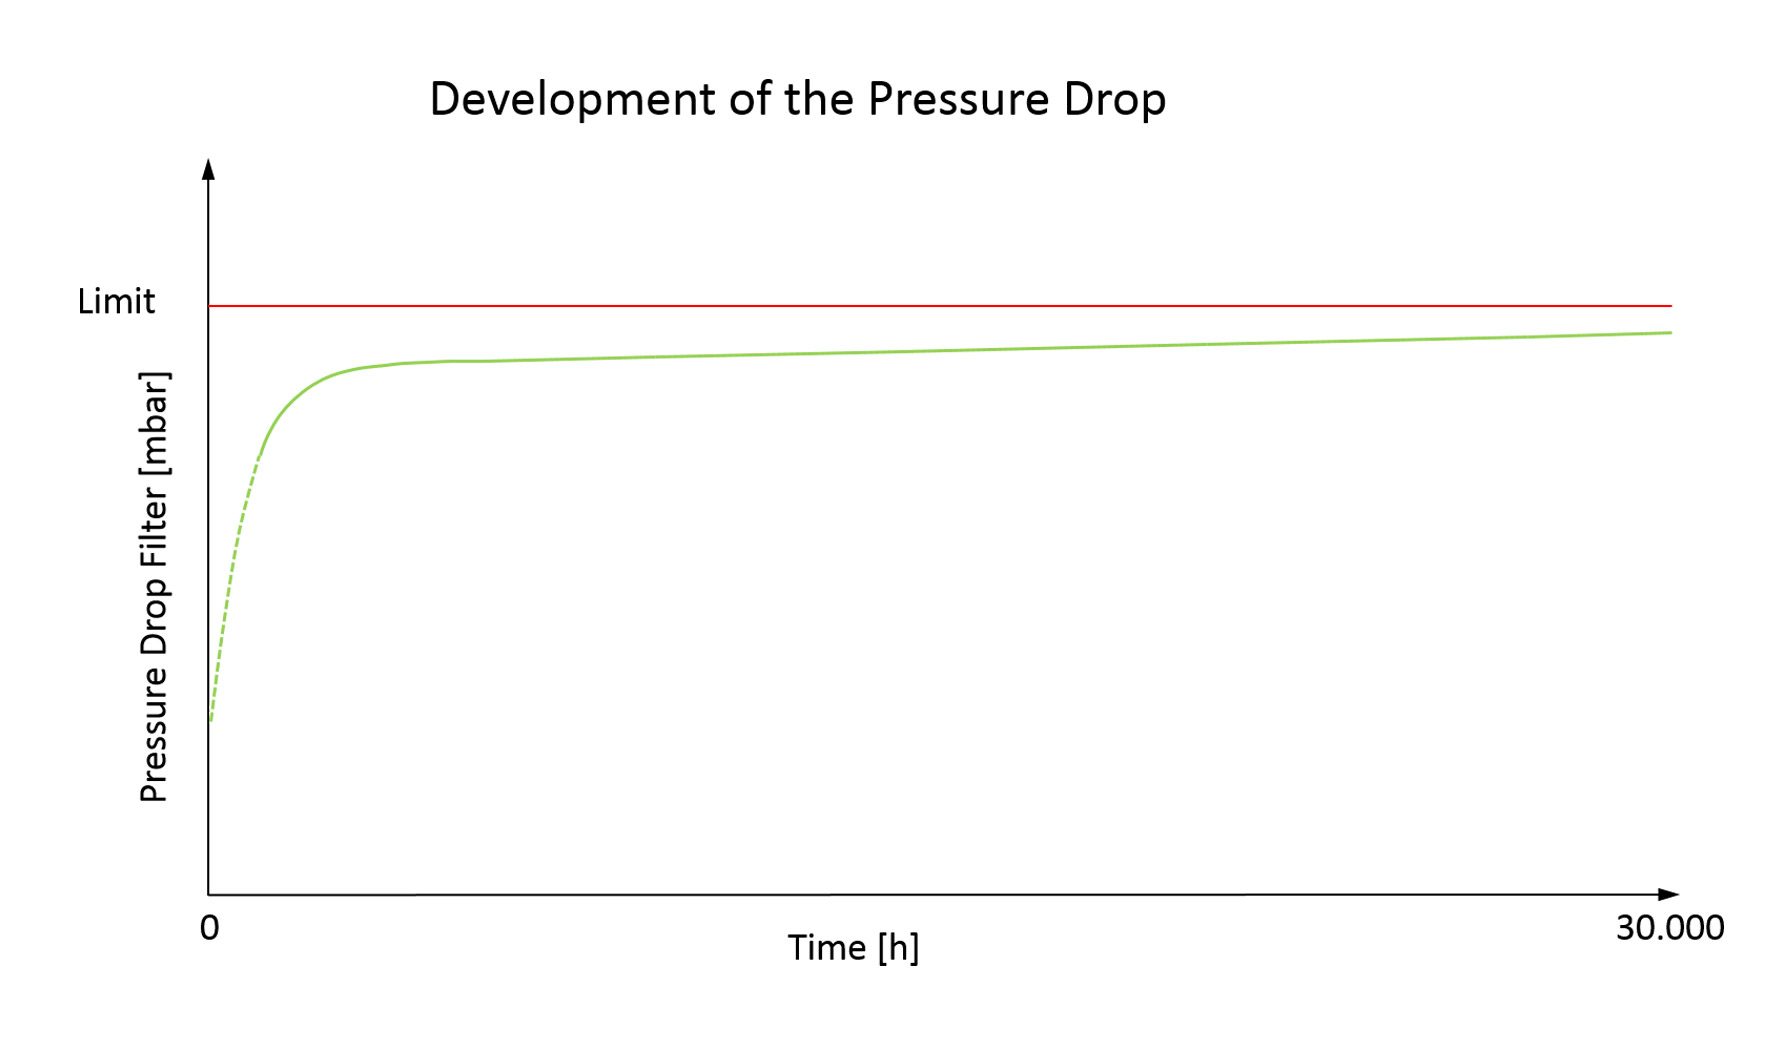 Pressure drop characteristics over time